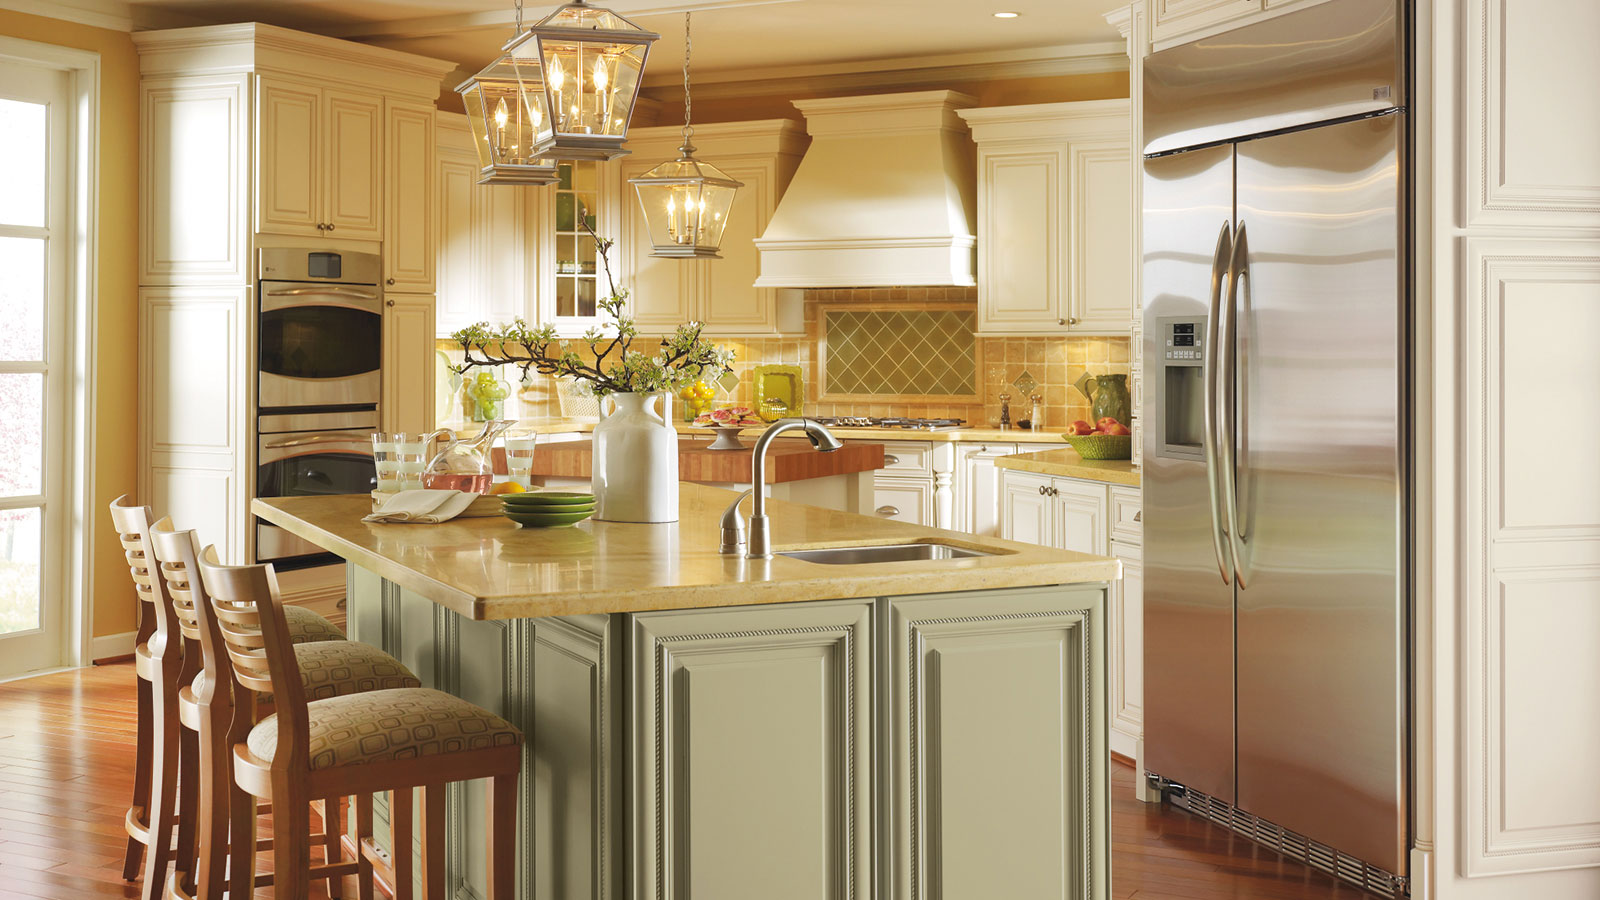 Off White Cabinets with Glaze - Omega Cabinetry